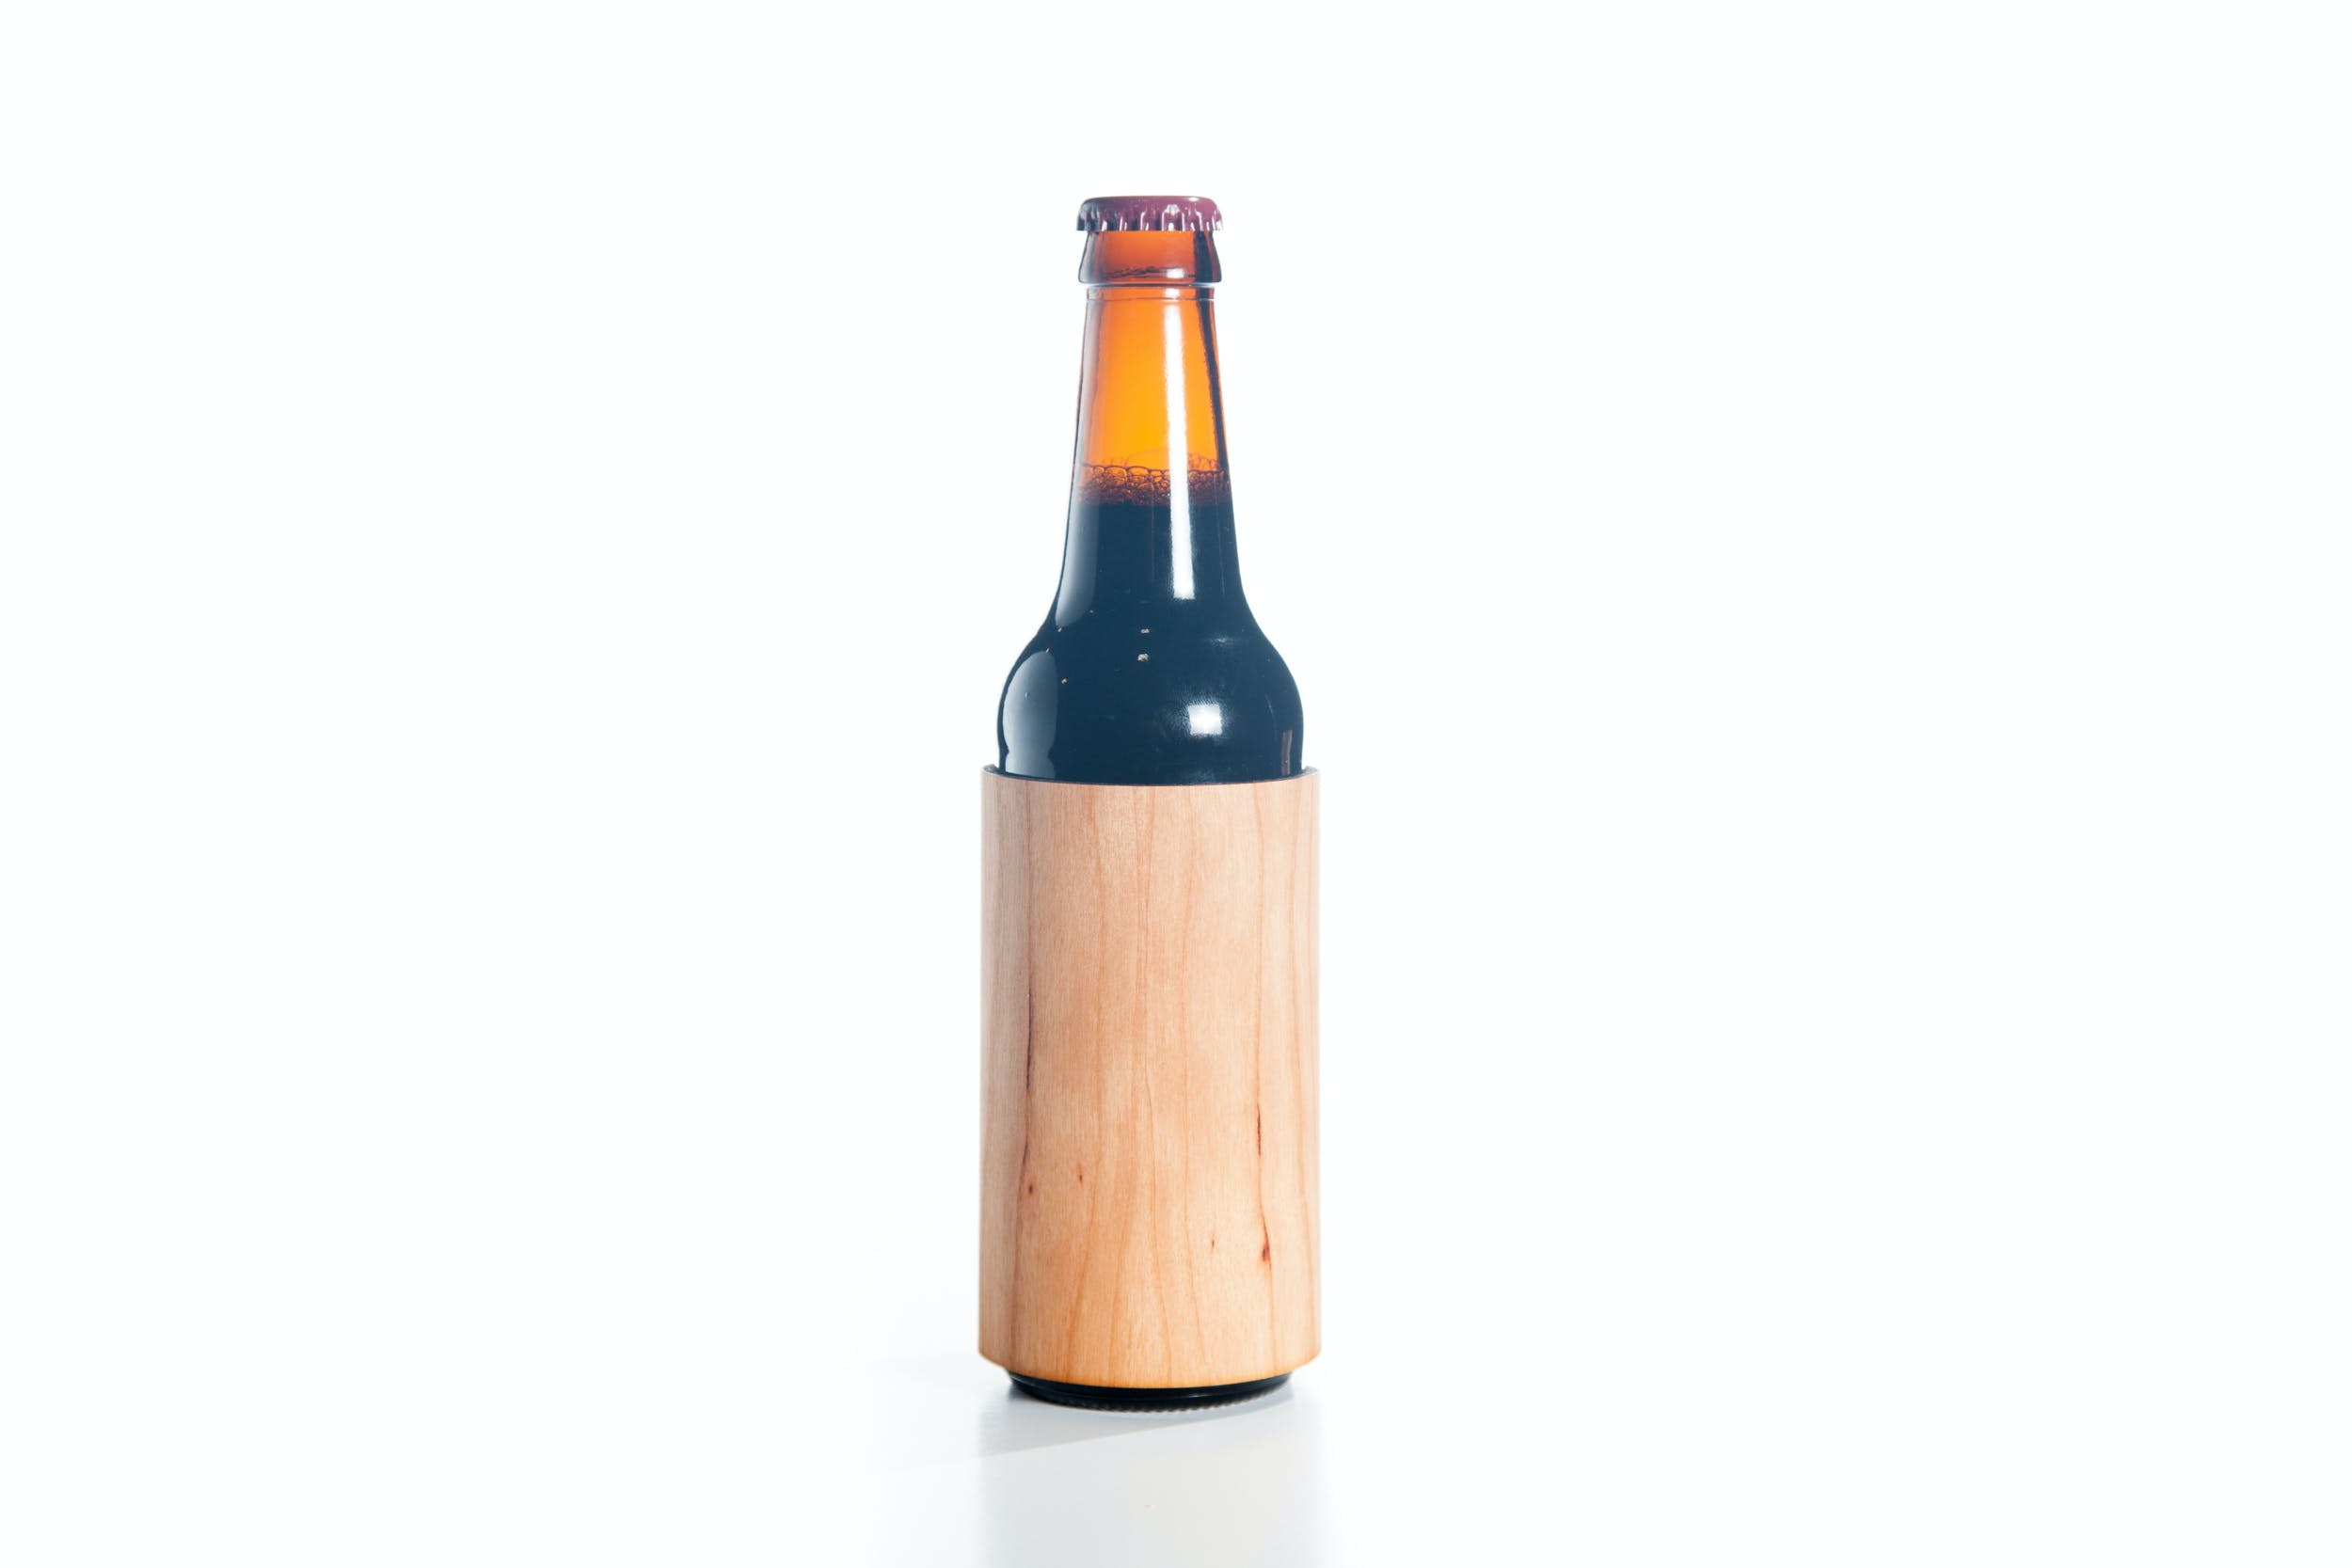 Real Wood Bottle Koozie - sold by Just 1 Tree